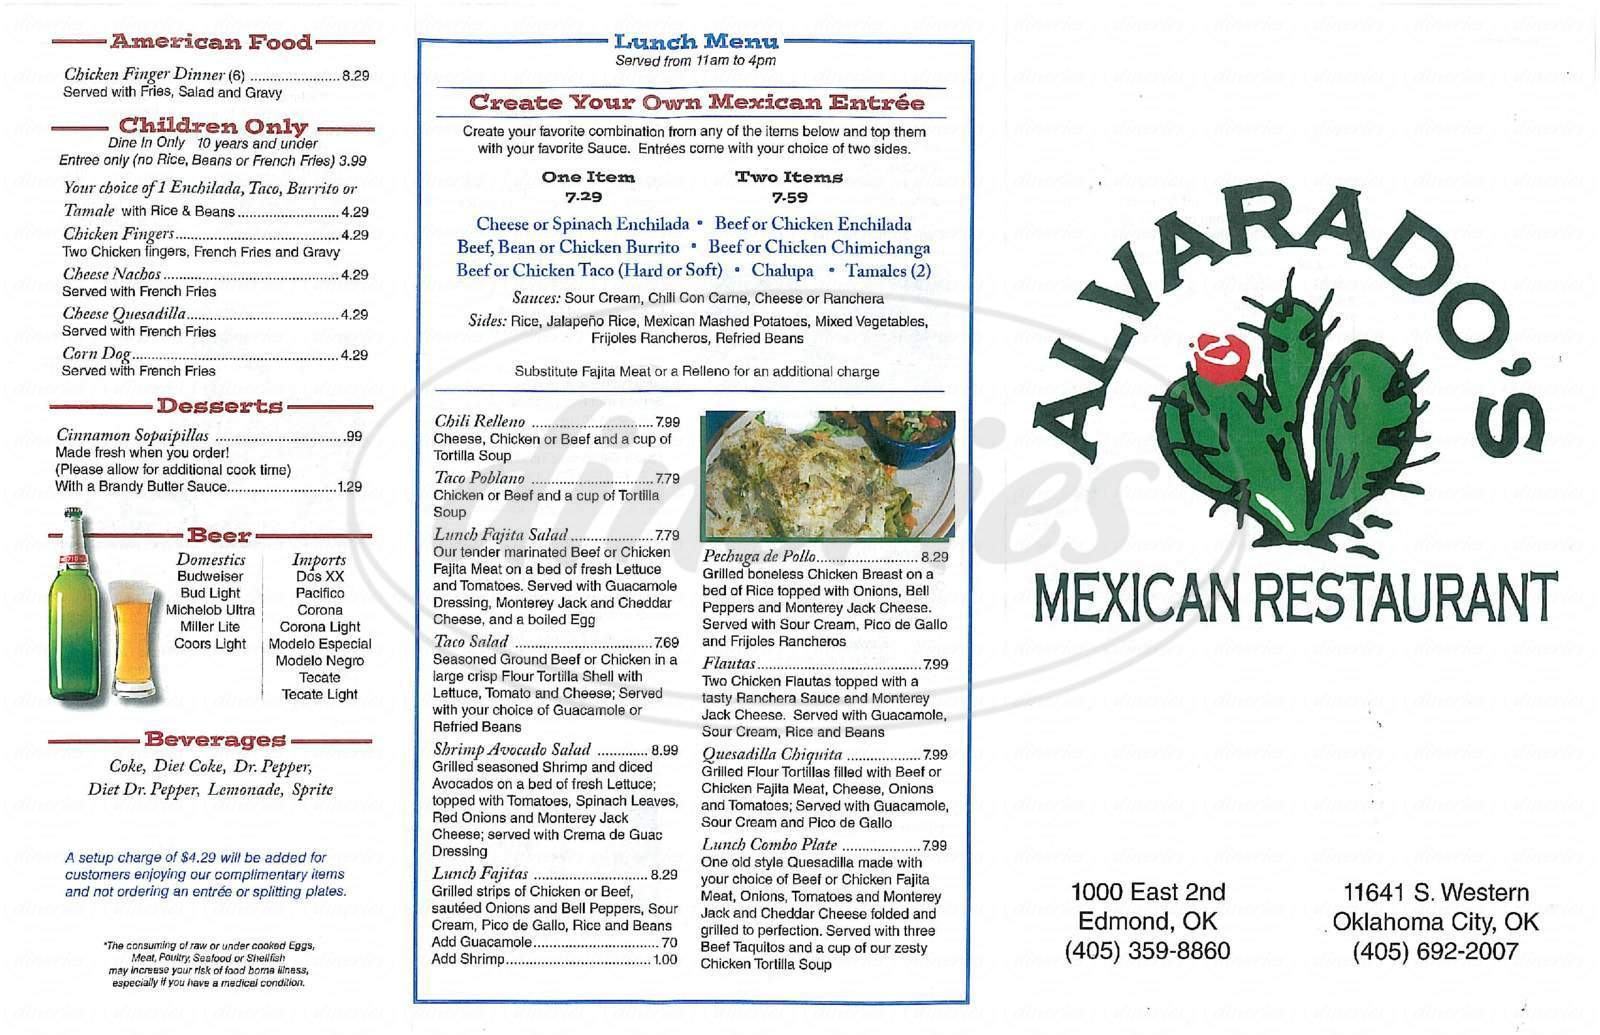 menu for Alvarado's Mexican Restaurant